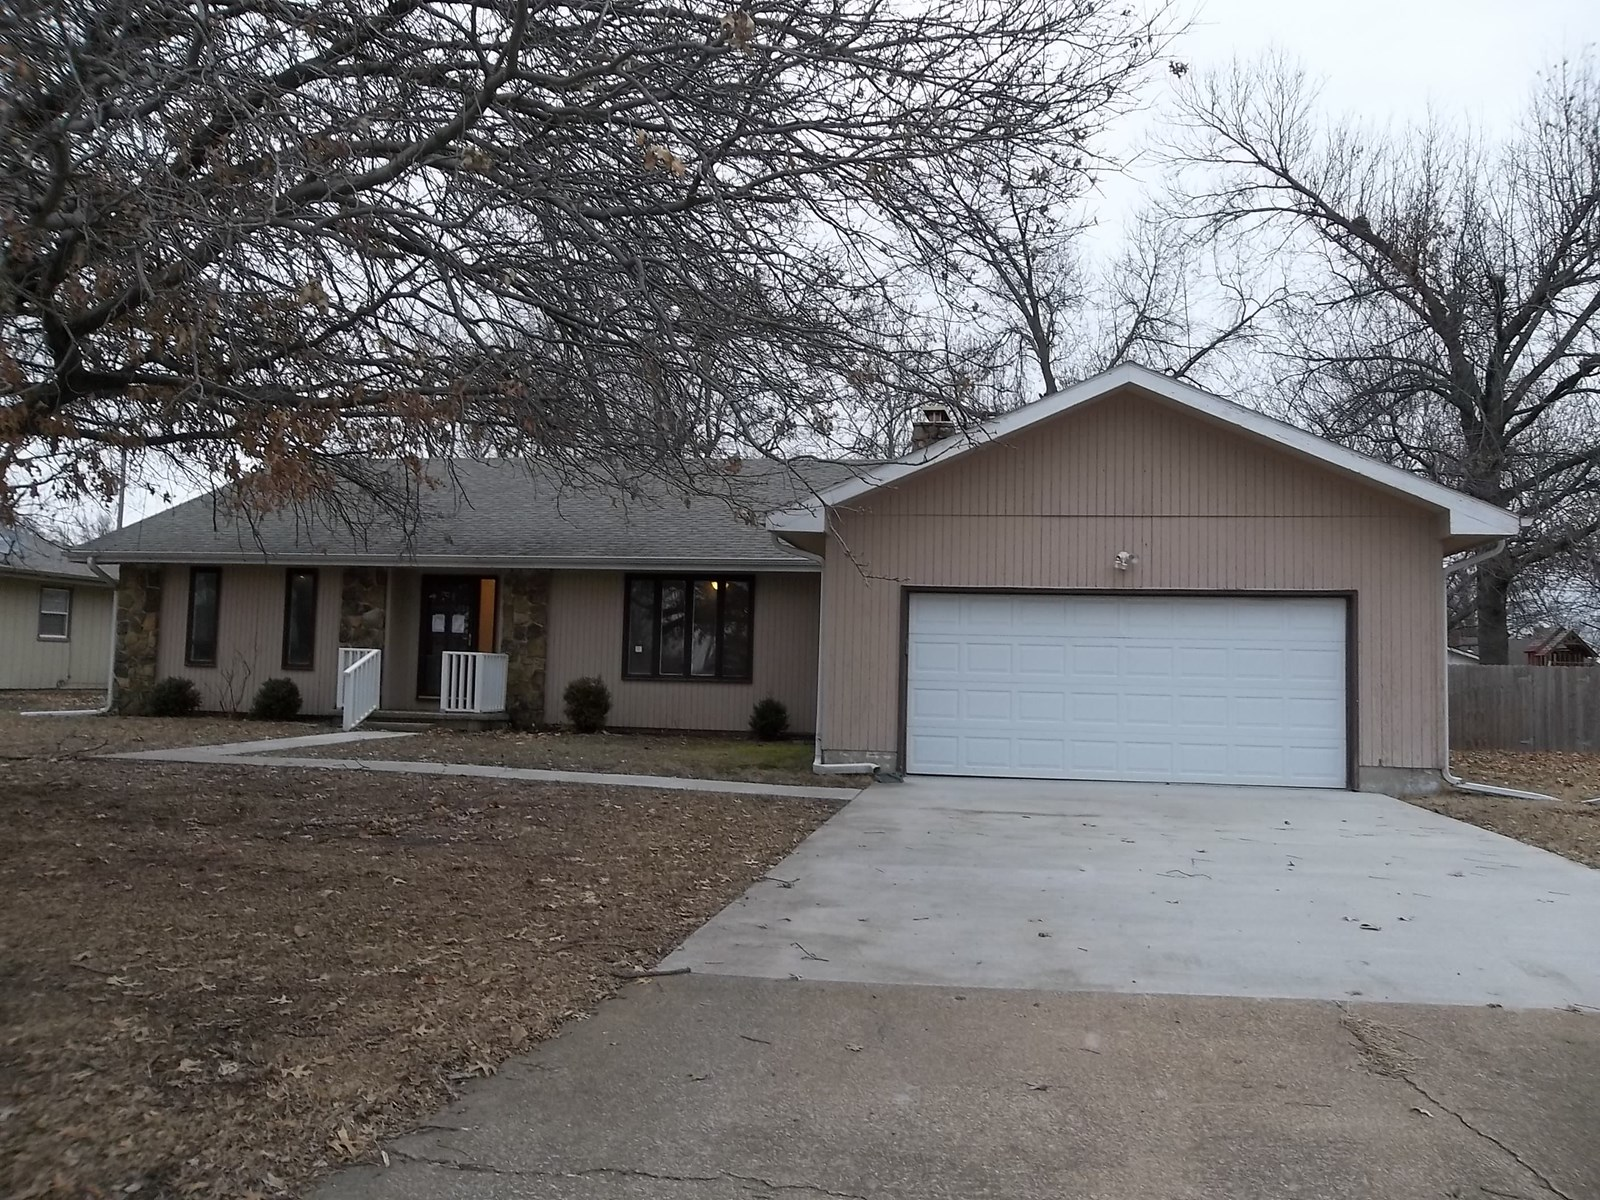 Home for Sale in Parsons Kansas